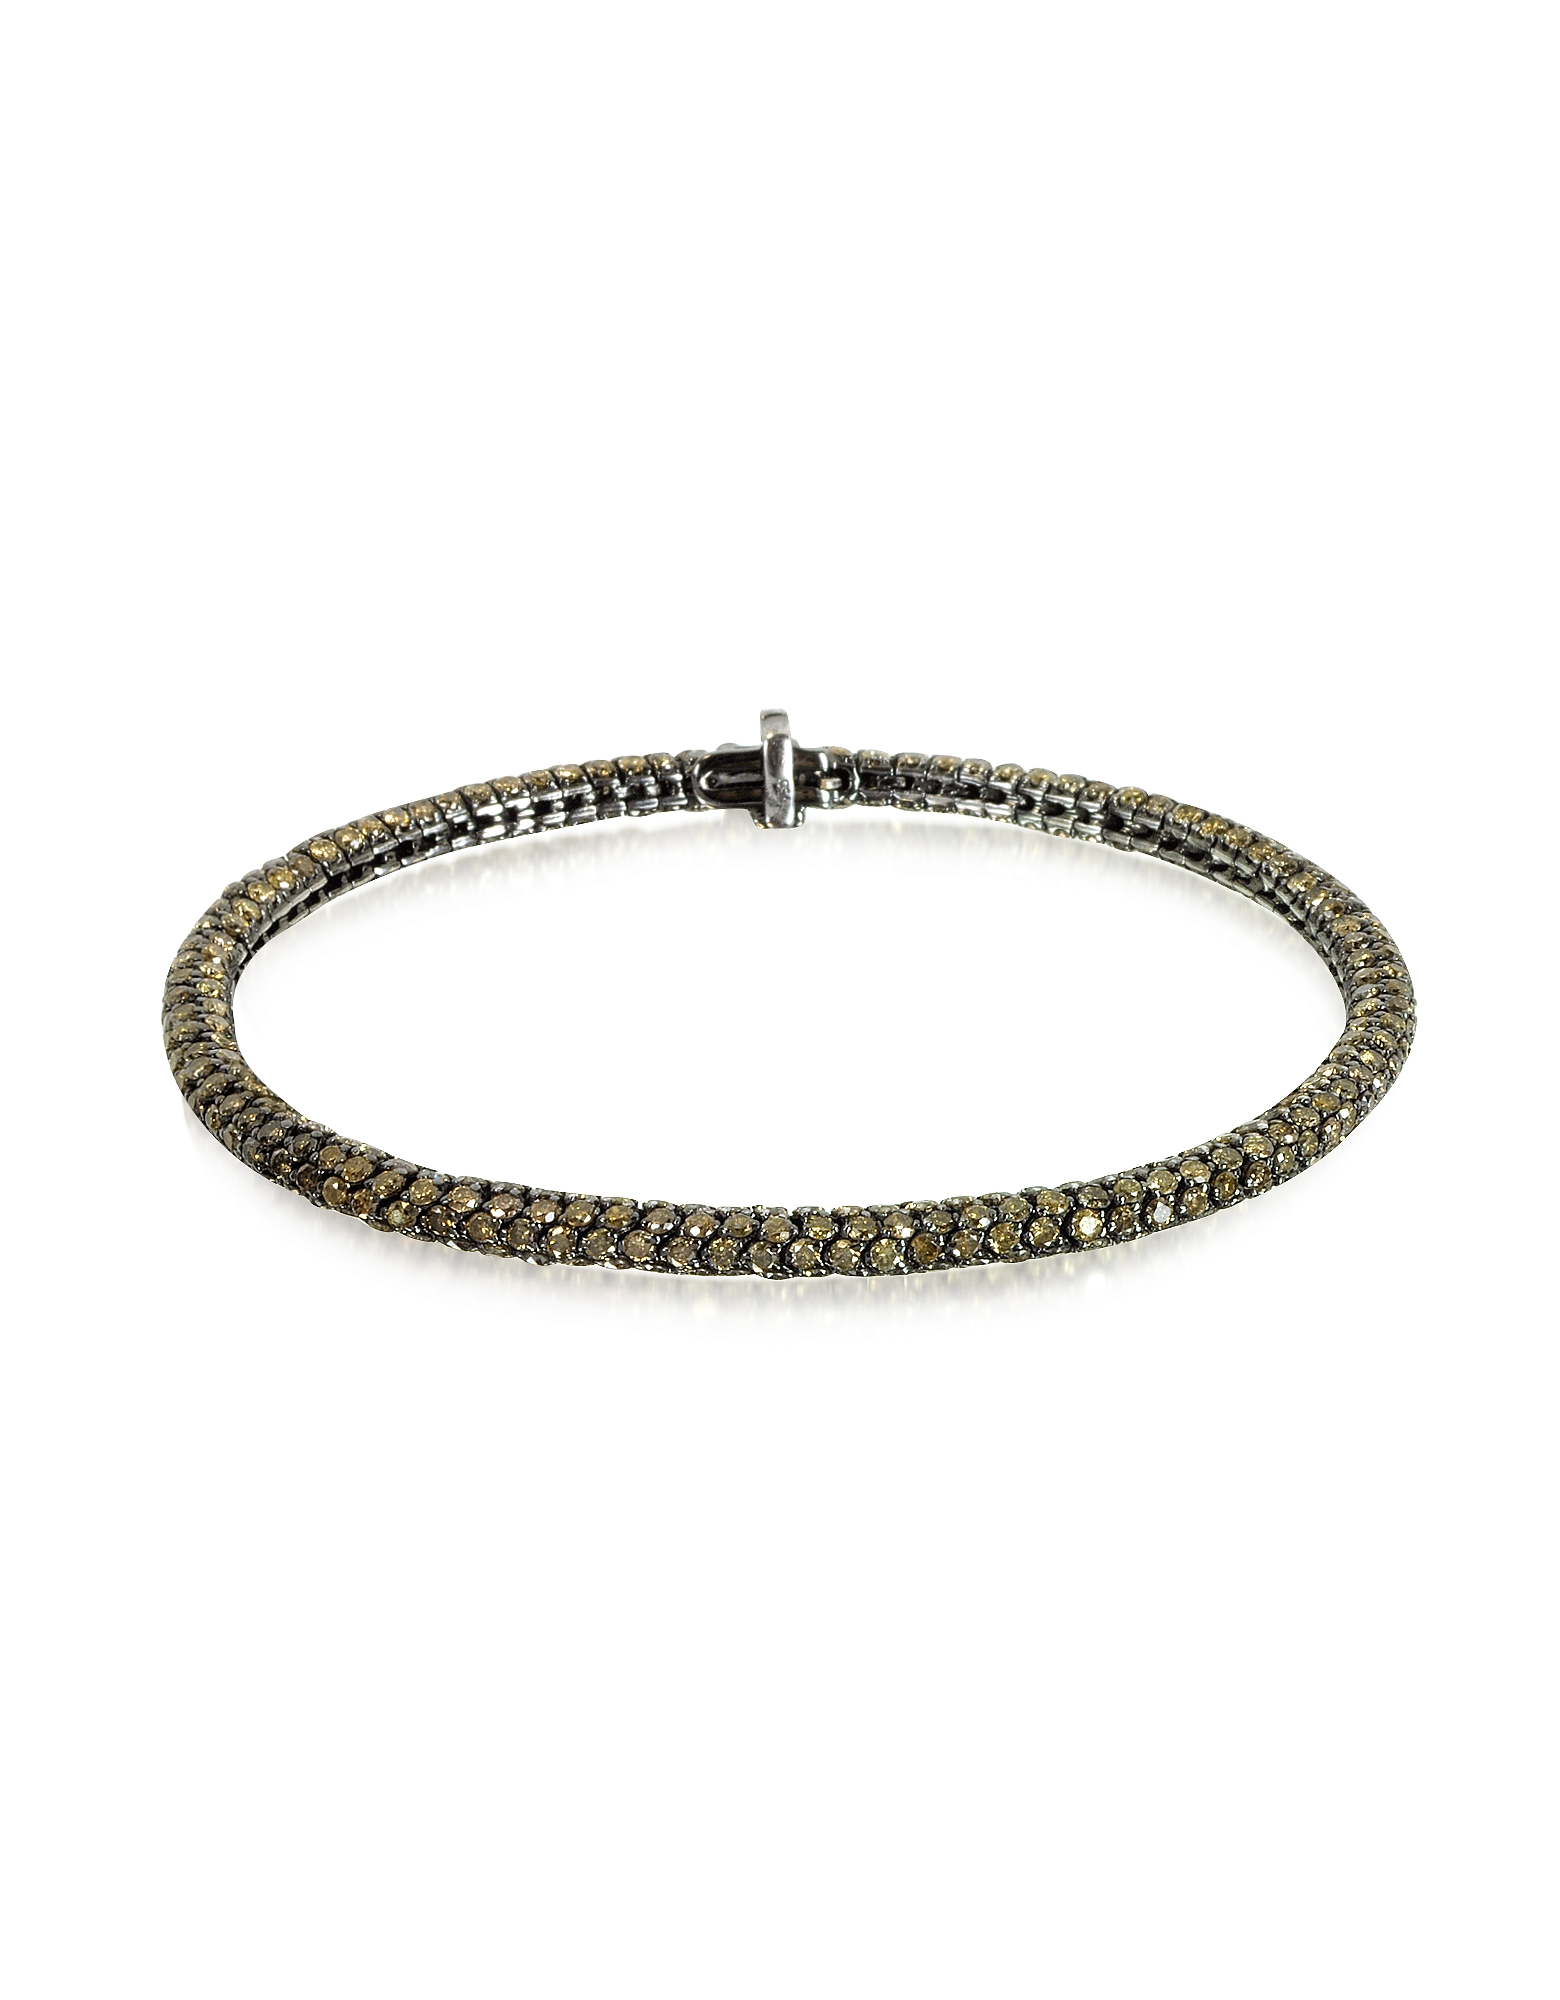 Christian Koban Bracelets, Clou Brown Diamond Bracelet